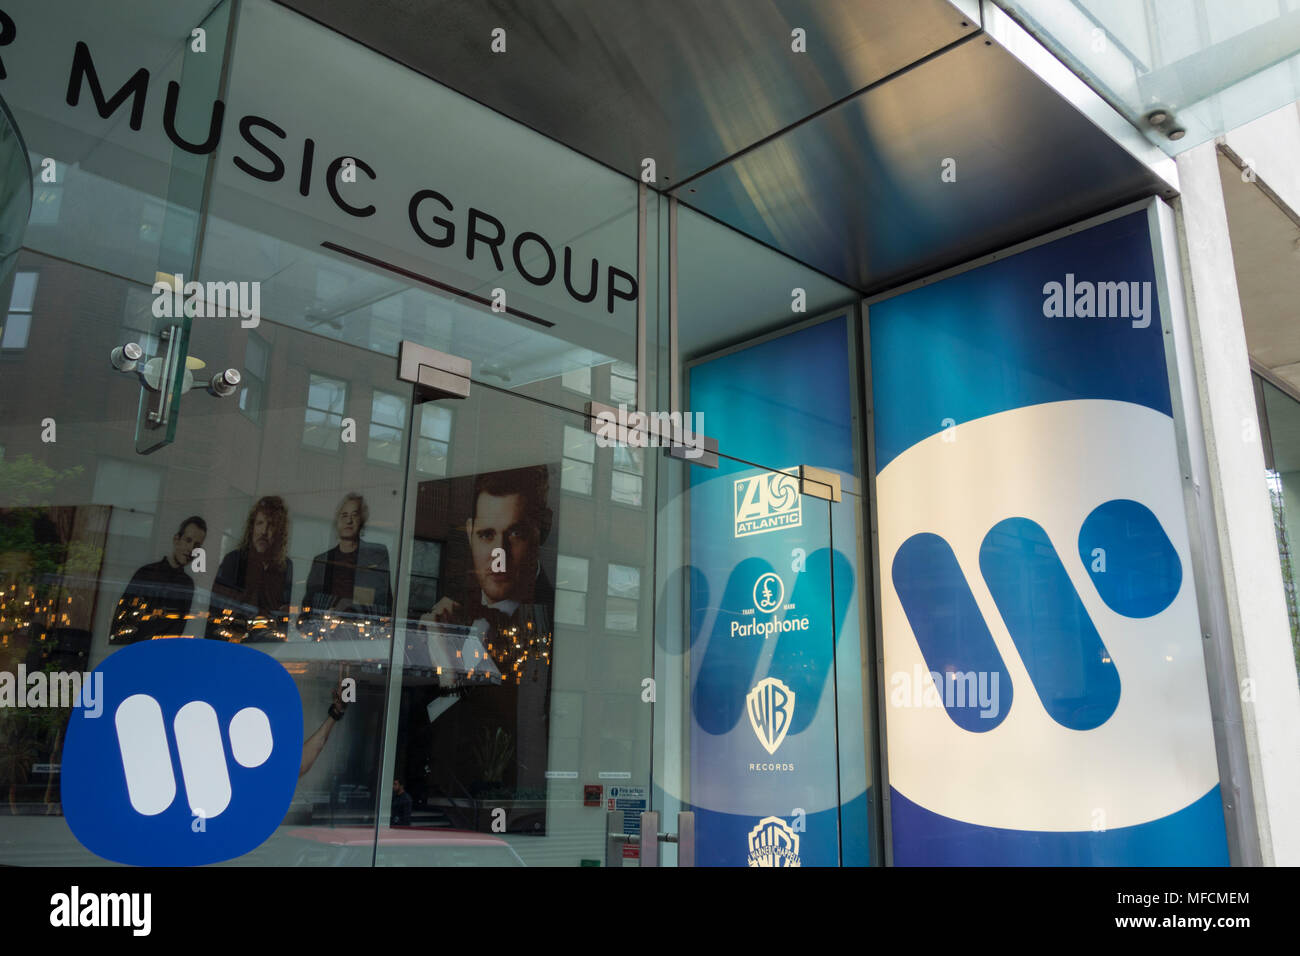 The Warner Music Group headquarters on Wrights Lane